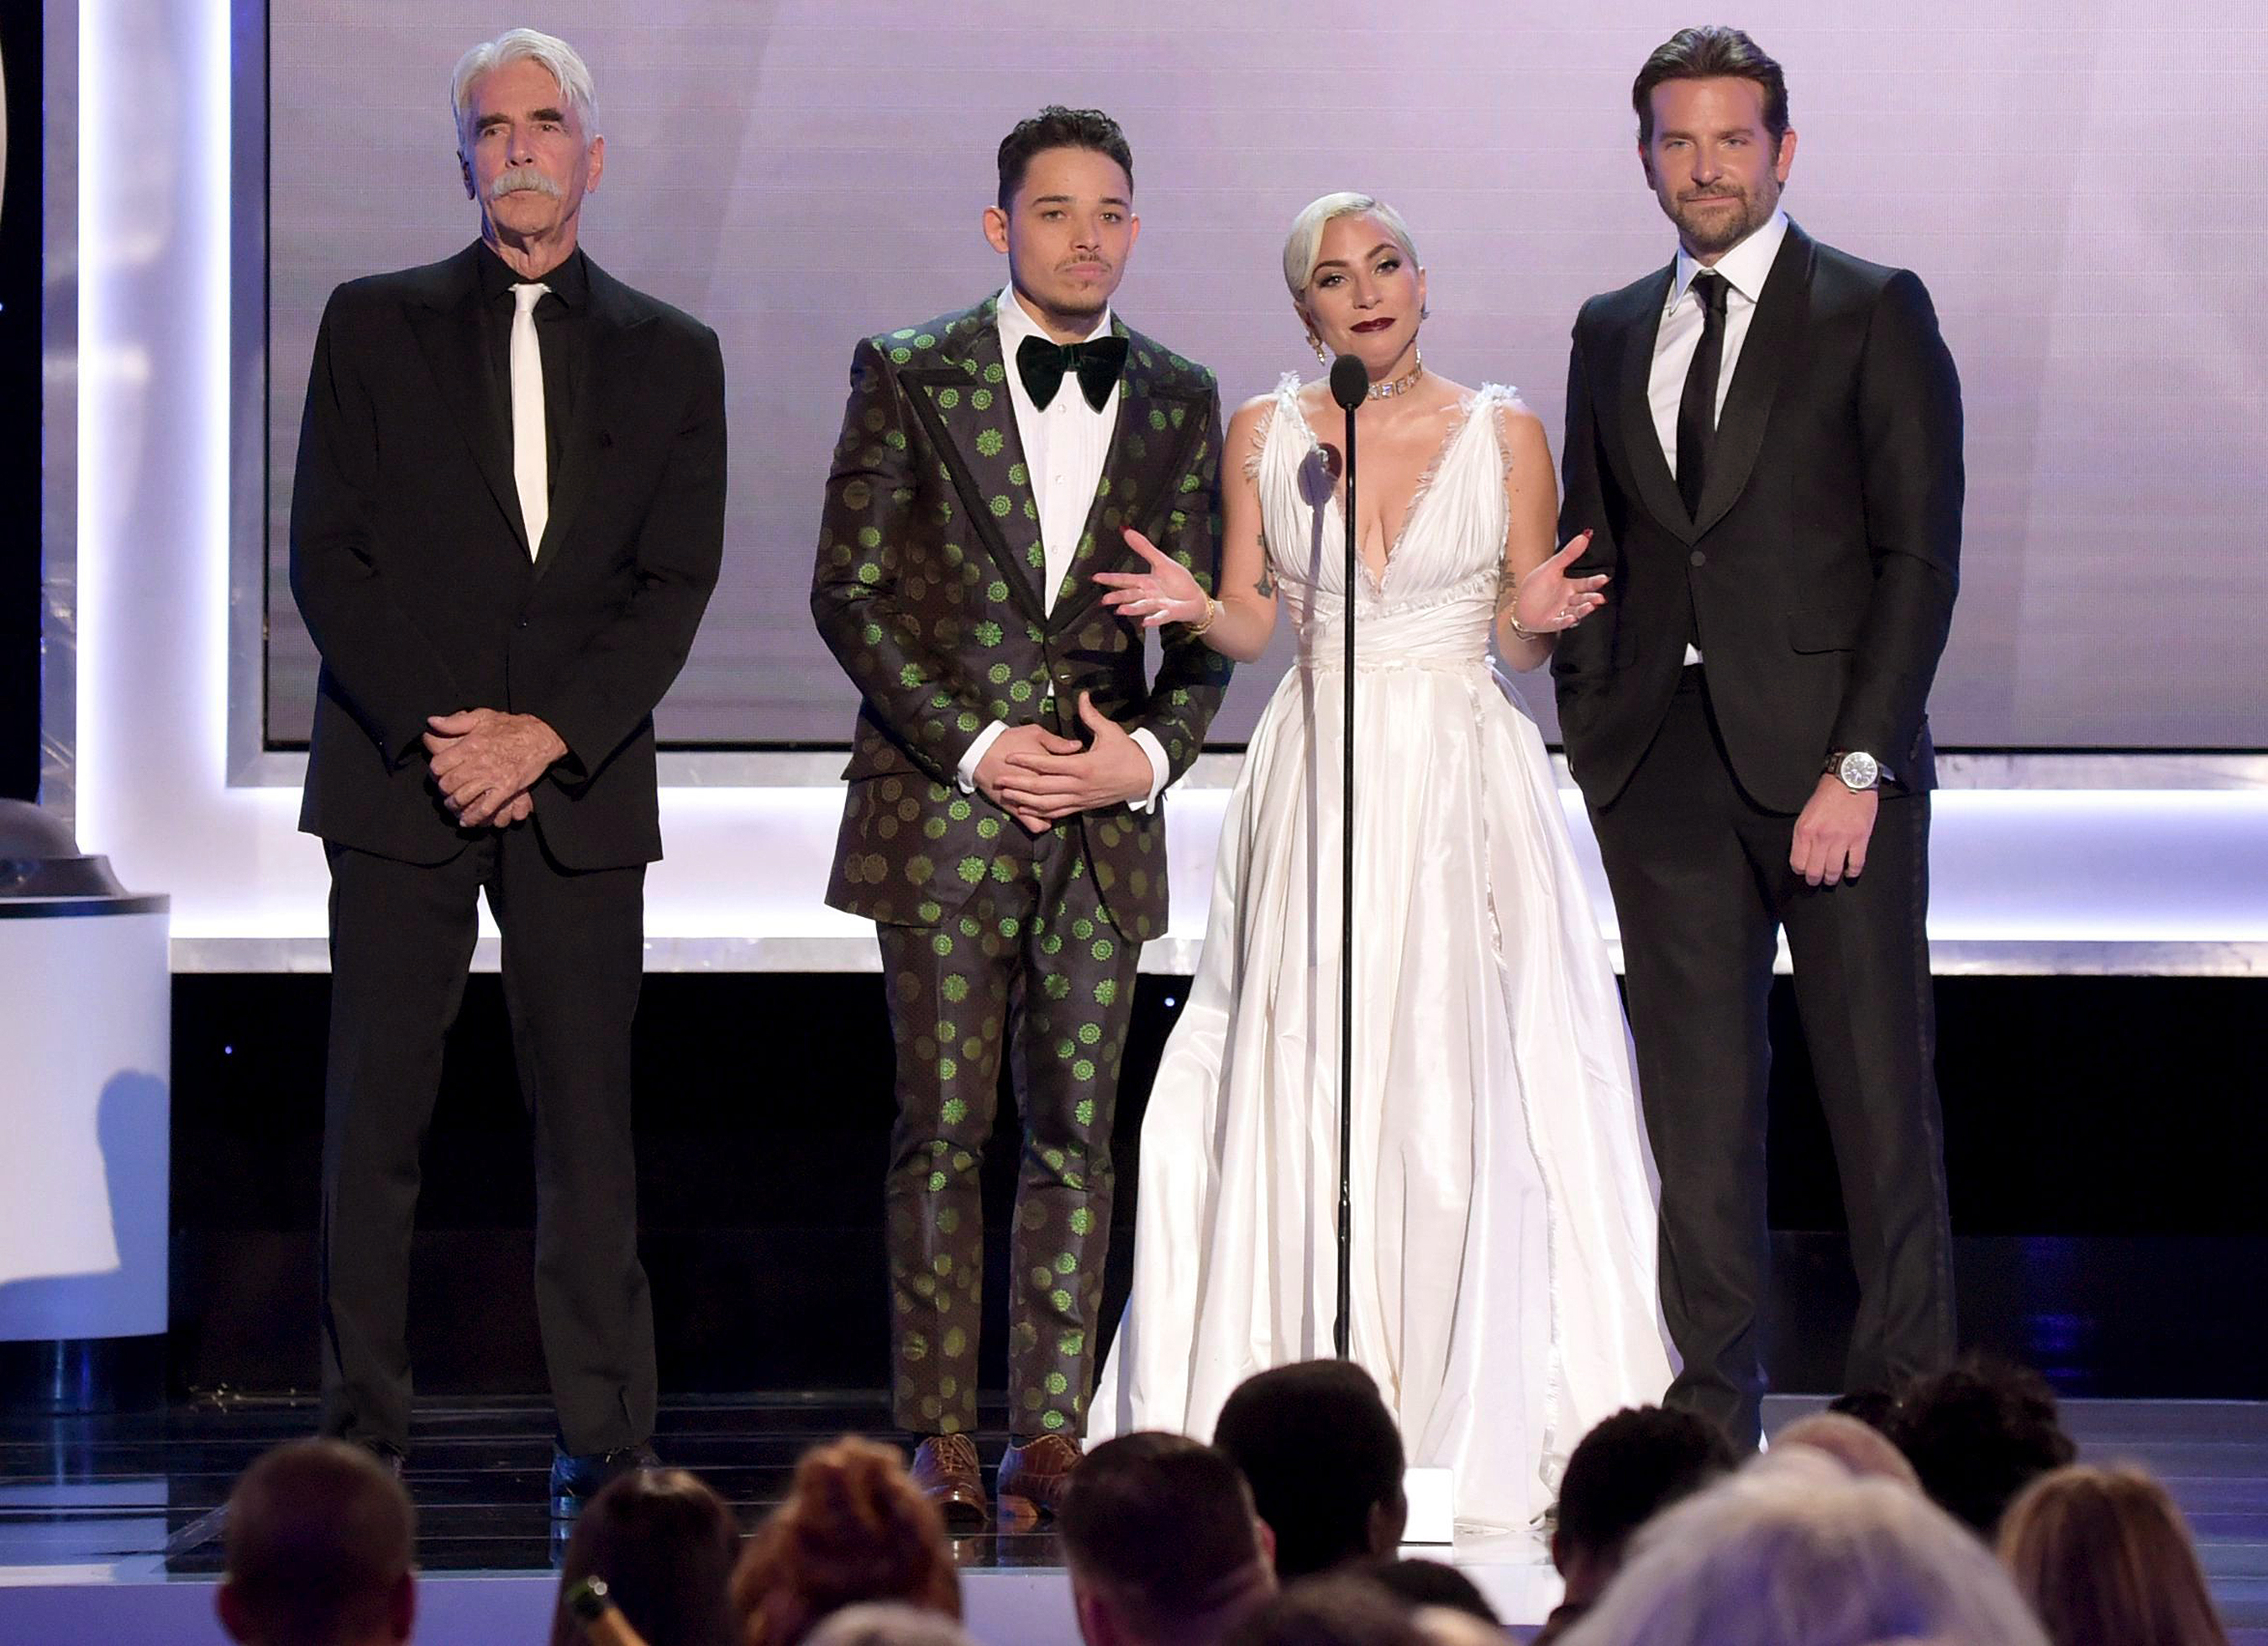 "Mandatory Credit: Photo by Richard Shotwell/Invision/AP/REX/Shutterstock (10074895v) Sam Elliott, Anthony Ramos, Lady Gaga, Bradley Cooper. Sam Elliott, from left, Anthony Ramos, Lady Gaga and Bradley Cooper, nominated for outstanding performance by a cast in a motion picture, introduce a clip from their film ""A Star Is Born"" at the 25th annual Screen Actors Guild Awards at the Shrine Auditorium & Expo Hall, in Los Angeles 25th Annual SAG Awards - Show, Los Angeles, USA - 27 Jan 2019"